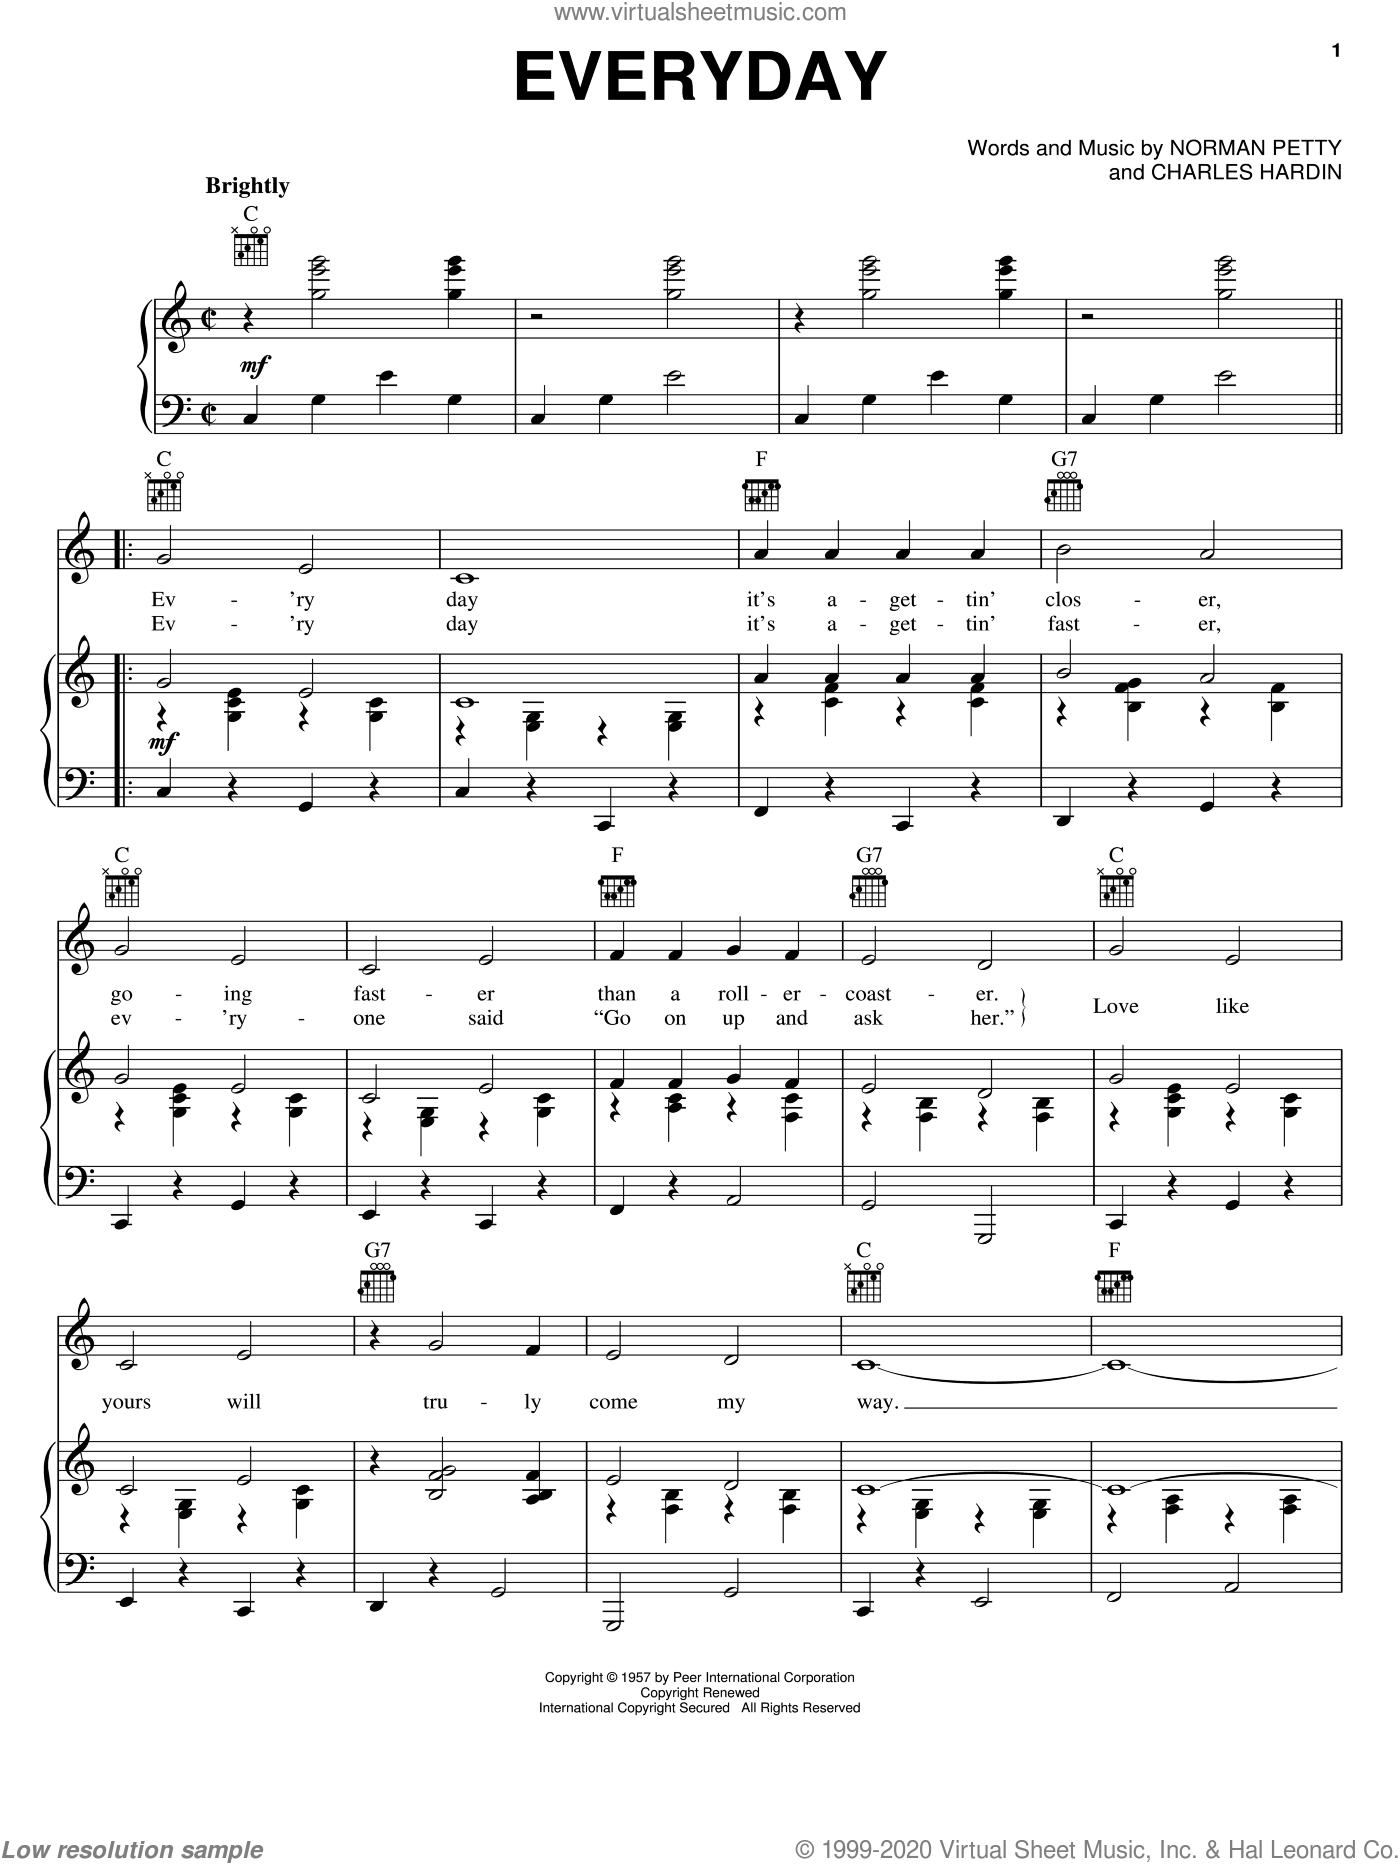 Everyday sheet music for voice, piano or guitar by Norman Petty